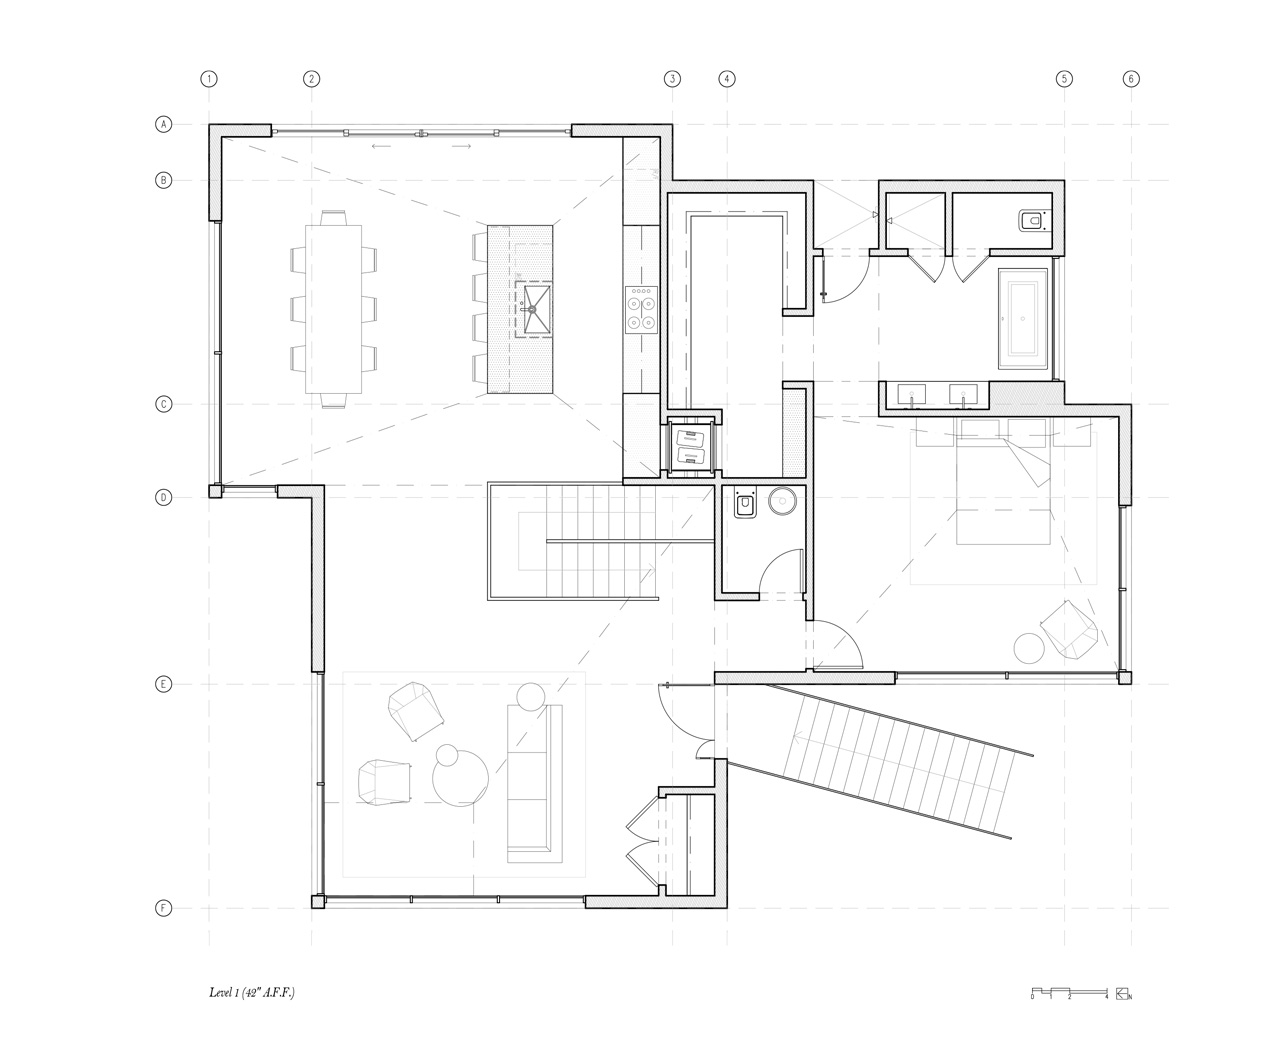 steven-christensen_carry-on-house_plan-1_1280.jpg